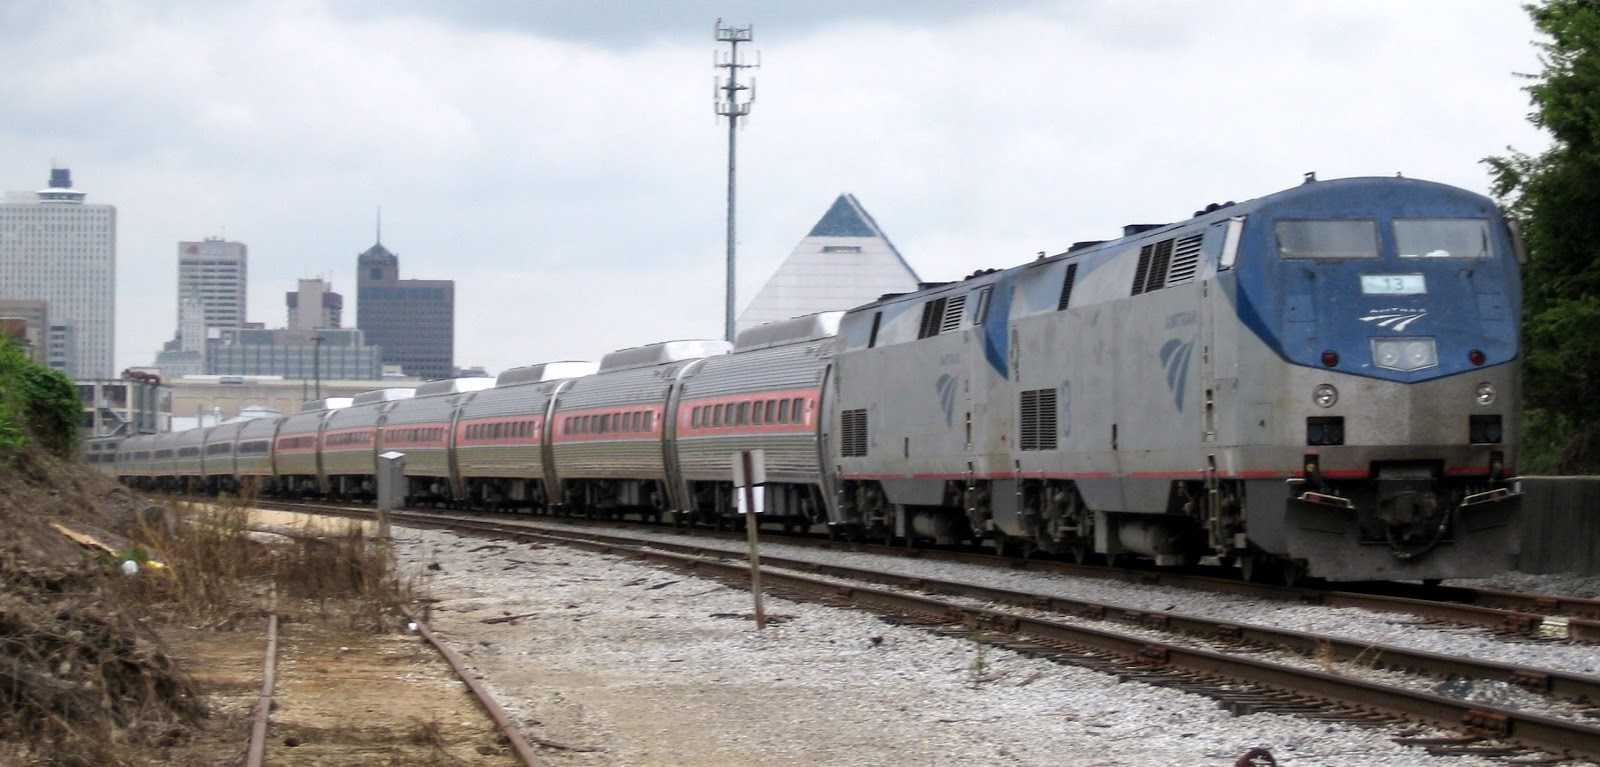 Memphis Railroad And Trolley Museum Fema Evacuation Trains At